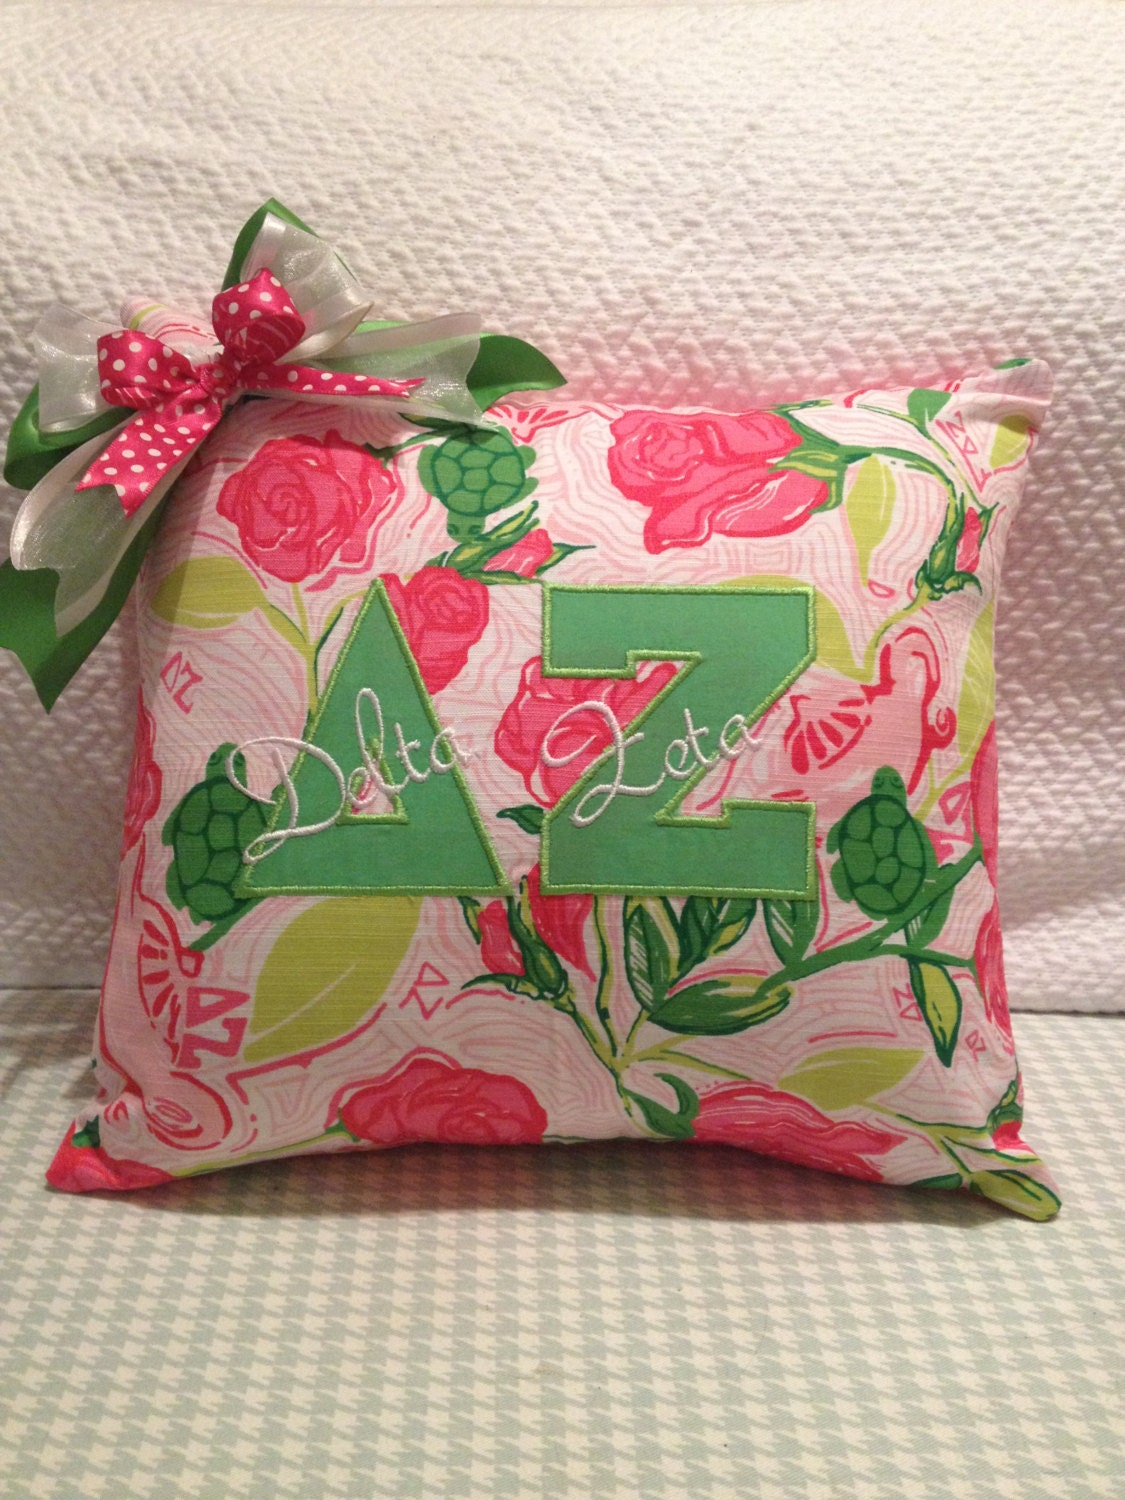 Delta zeta greek letter pillow pink lilly pulitzer by mamabern for Lilly pulitzer sorority letters